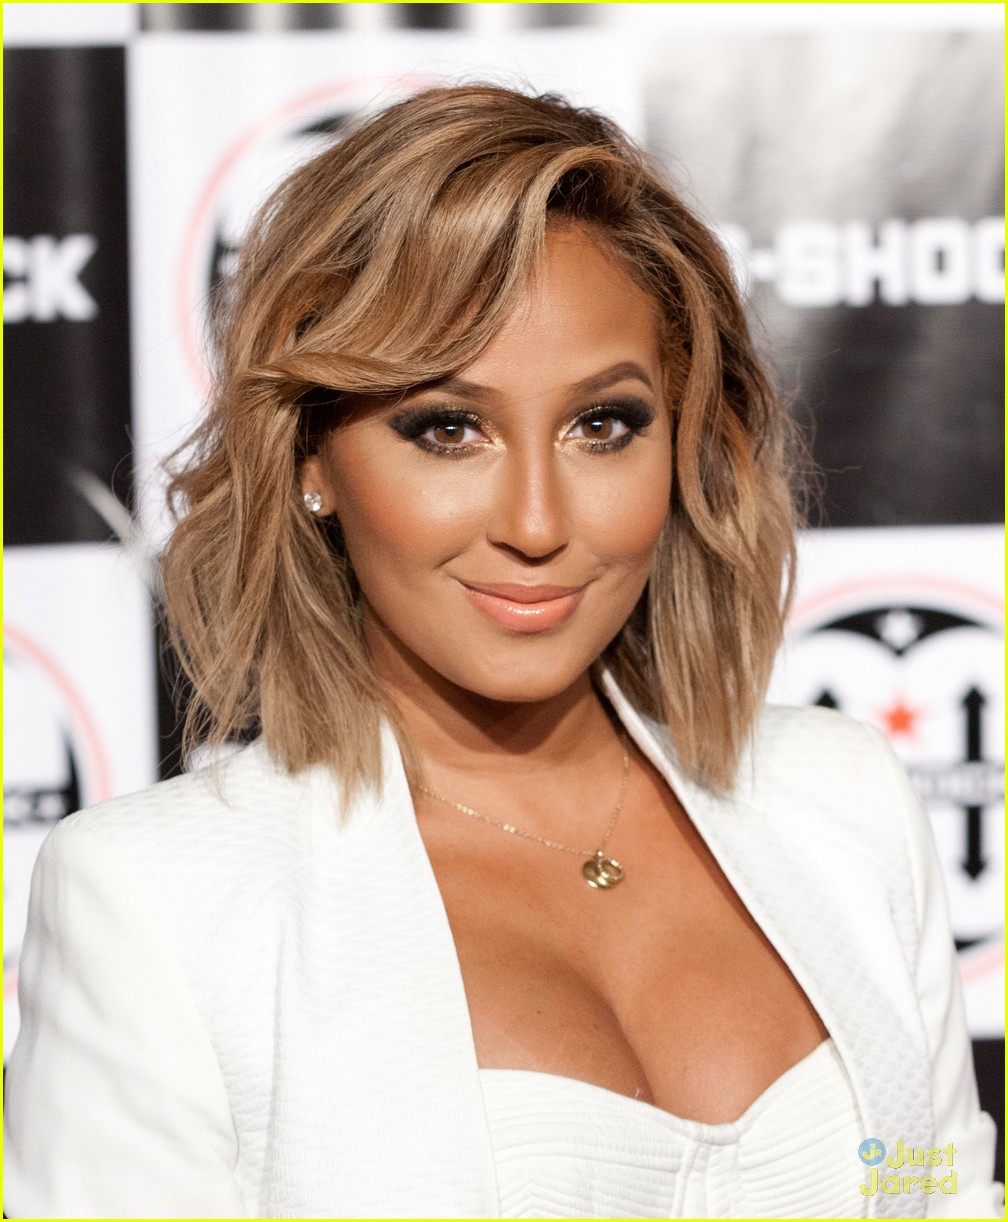 adrienne bailon weddingadrienne bailon vk, adrienne bailon mp3, adrienne bailon y rob kardashian, adrienne bailon superbad mp3, adrienne bailon uncontrollable mp3, adrienne bailon dresses, adrienne bailon instagram, adrienne bailon uncontrollable, adrienne bailon wedding, adrienne bailon beyonce, adrienne bailon songs, adrienne bailon israel houghton, adrienne bailon uncontrollable lyrics